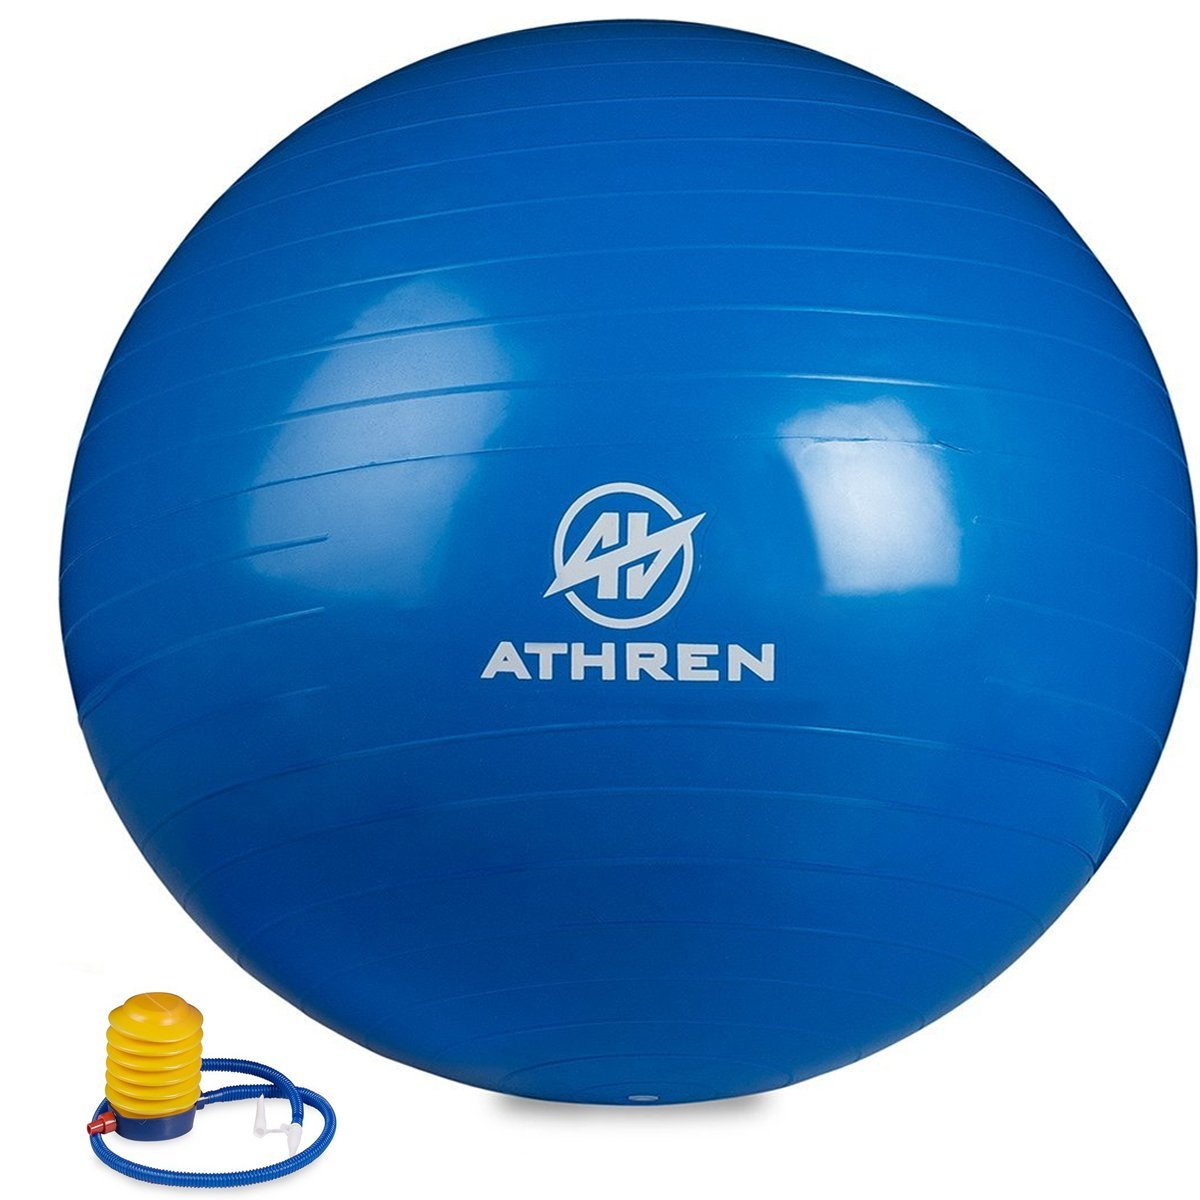 Athren Exercise Ball with Foot Pump